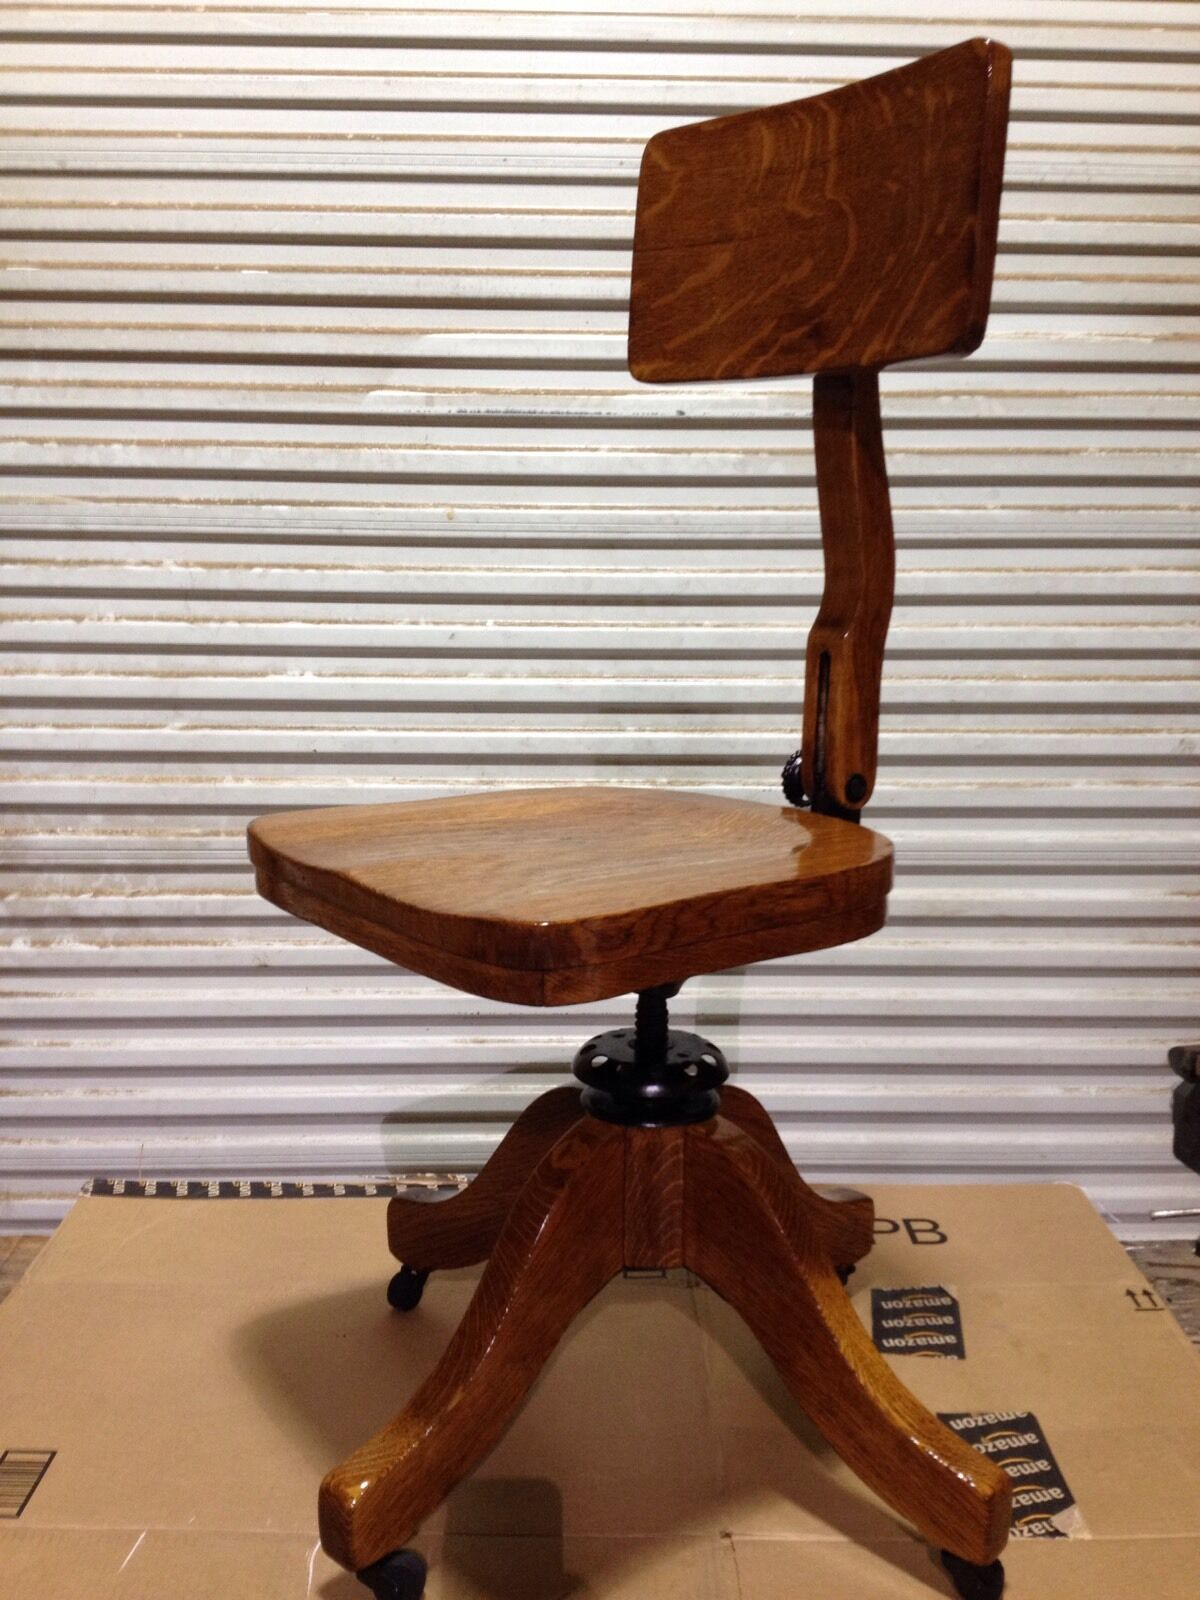 Wood Bankers Chair Antique Solid Wood Quartersawn Oak Swivel Chair 1920s